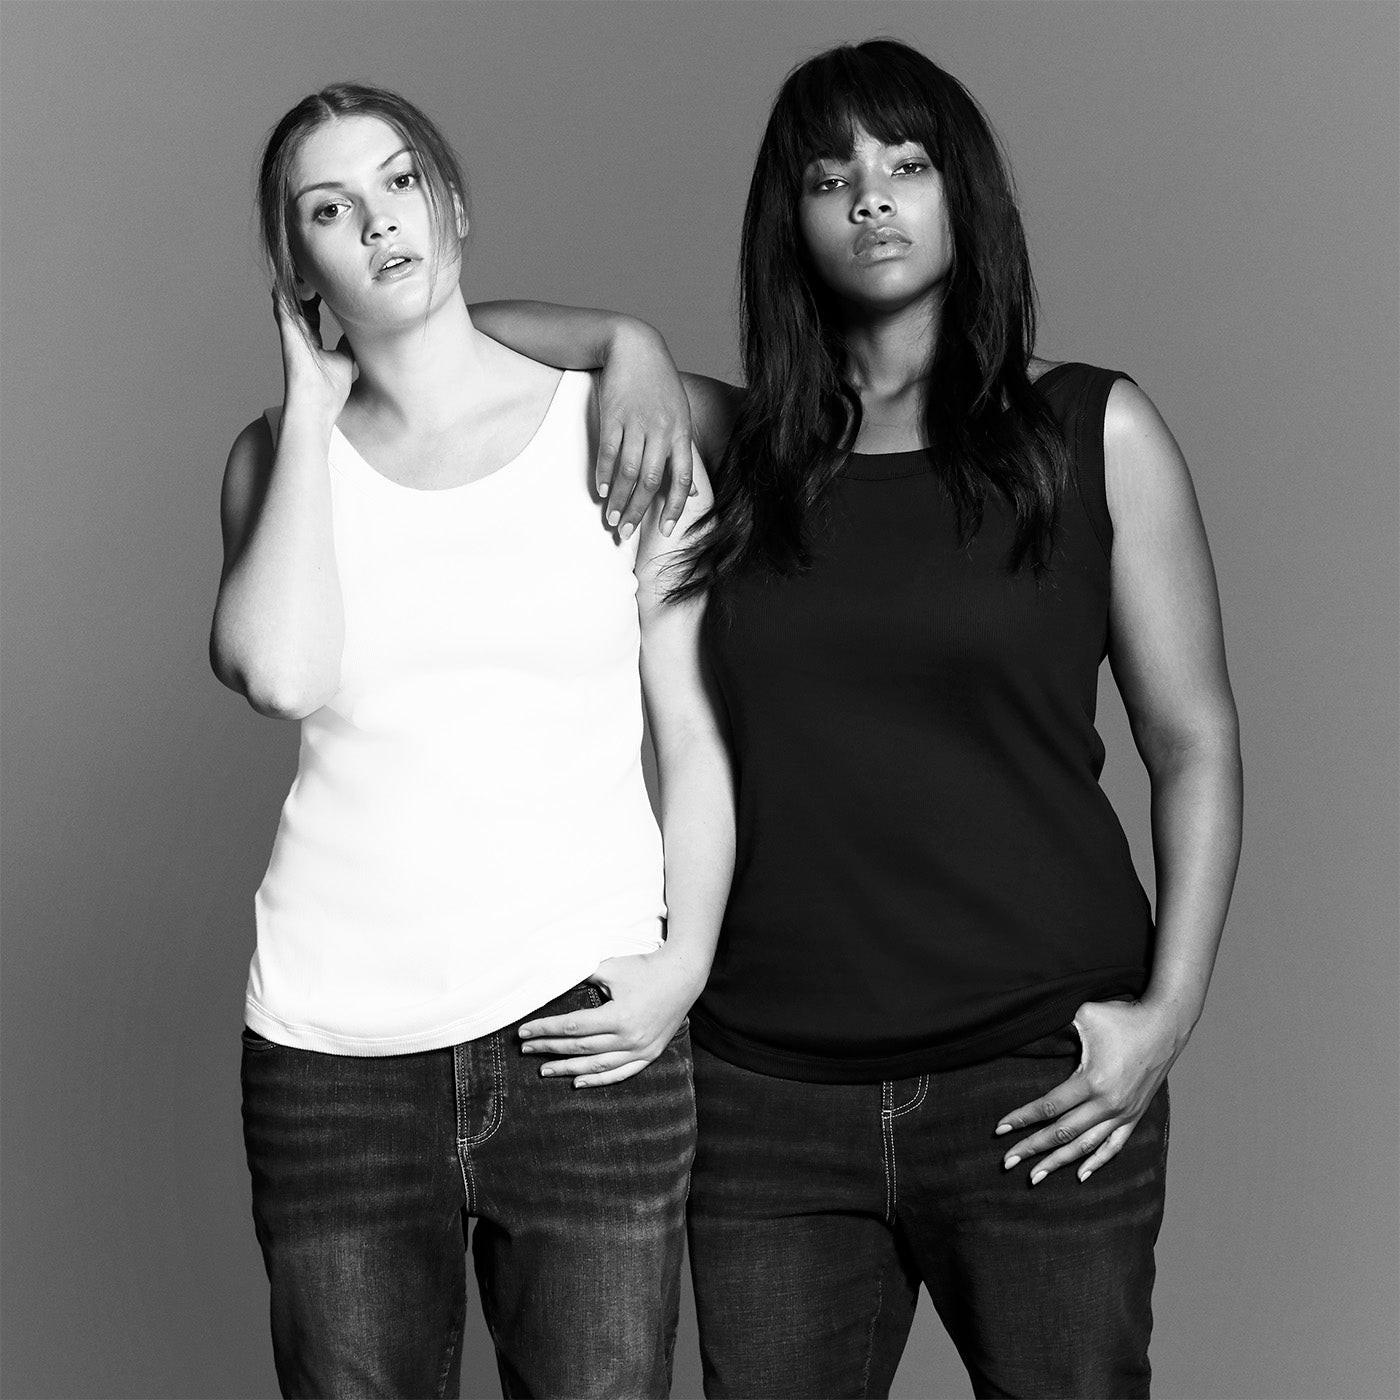 Two plus size models in modern clothing - new york - universal standard